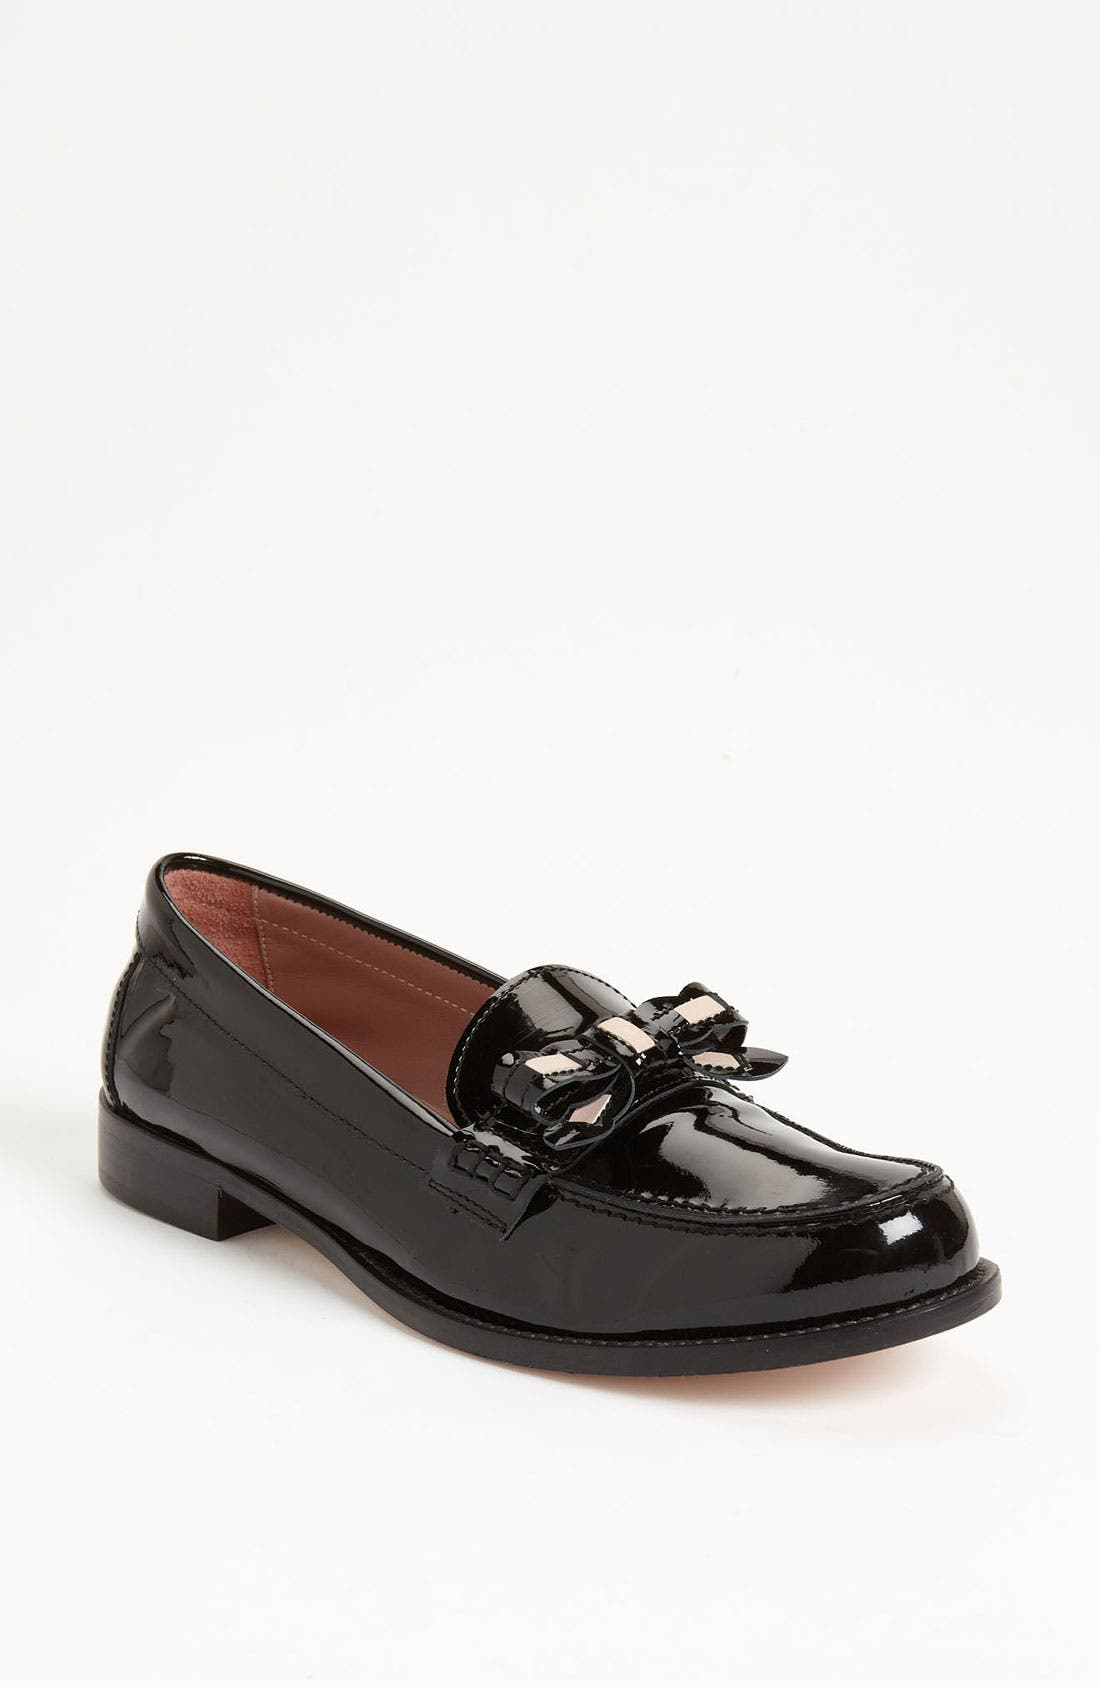 Alternate Image 1 Selected - RED Valentino Patent Loafer